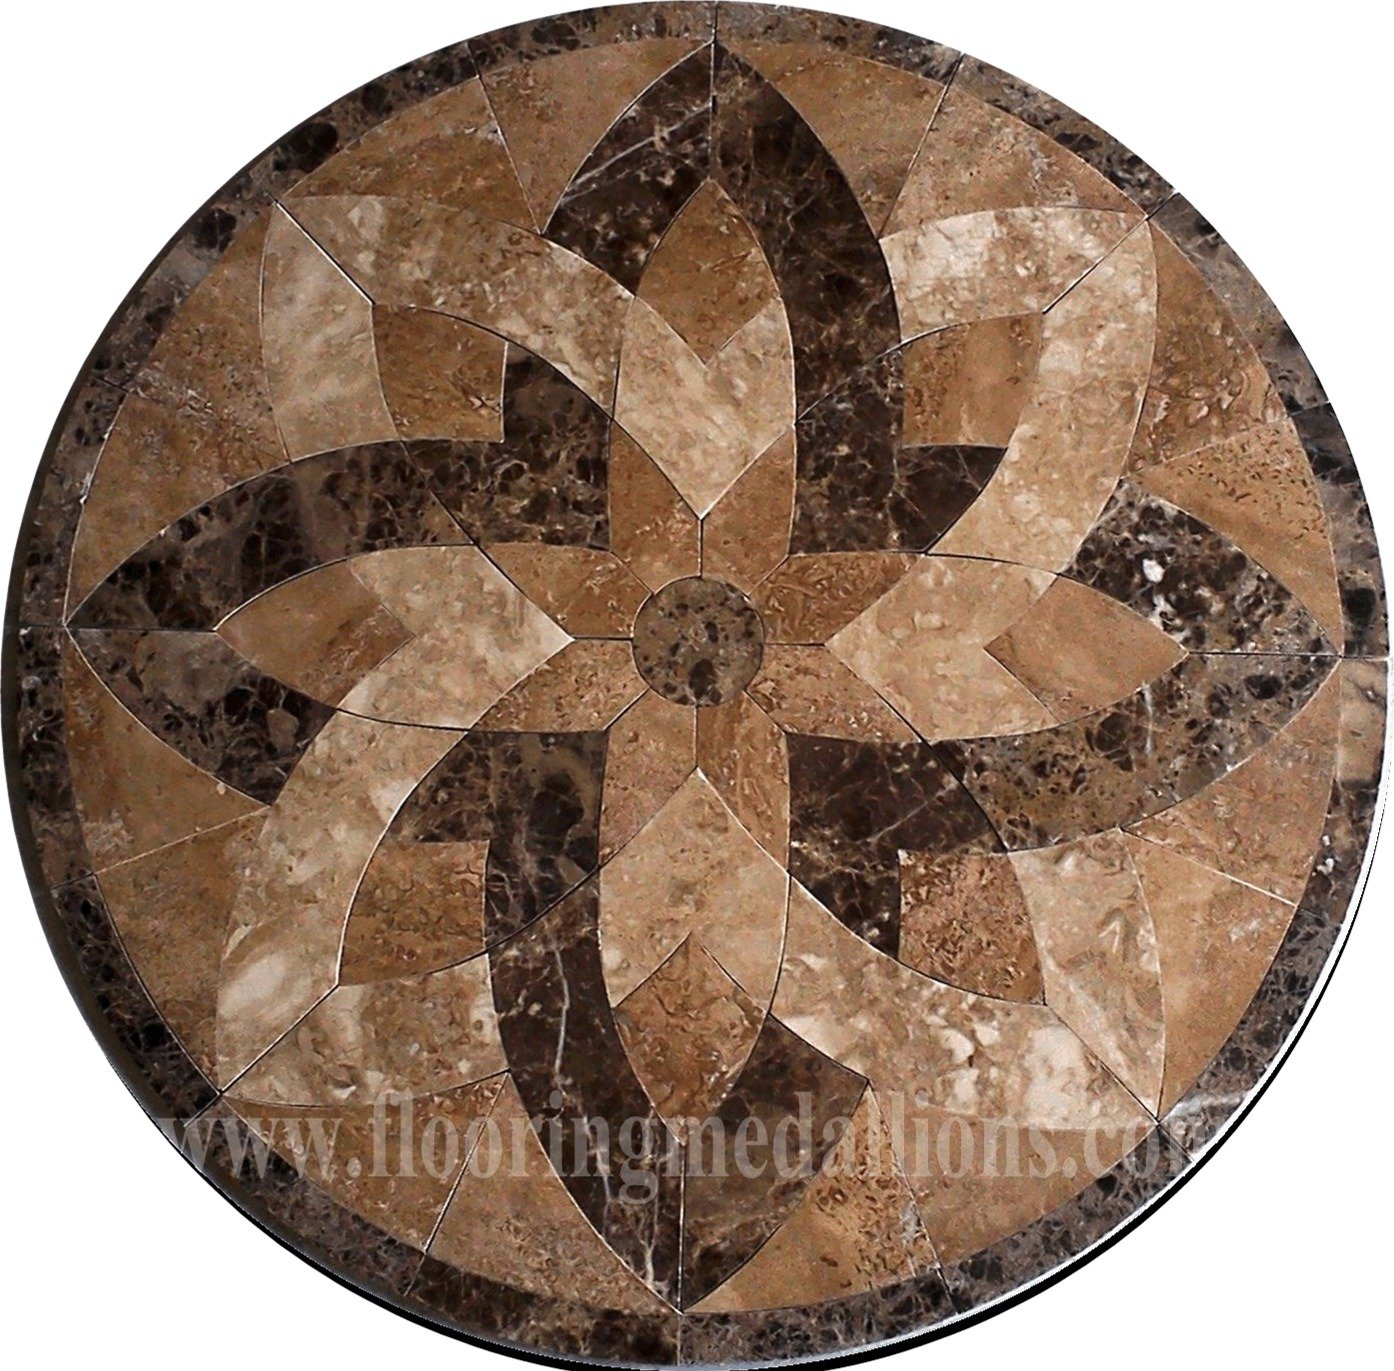 36 39 39 Floor Tile Marble Medallion 2002